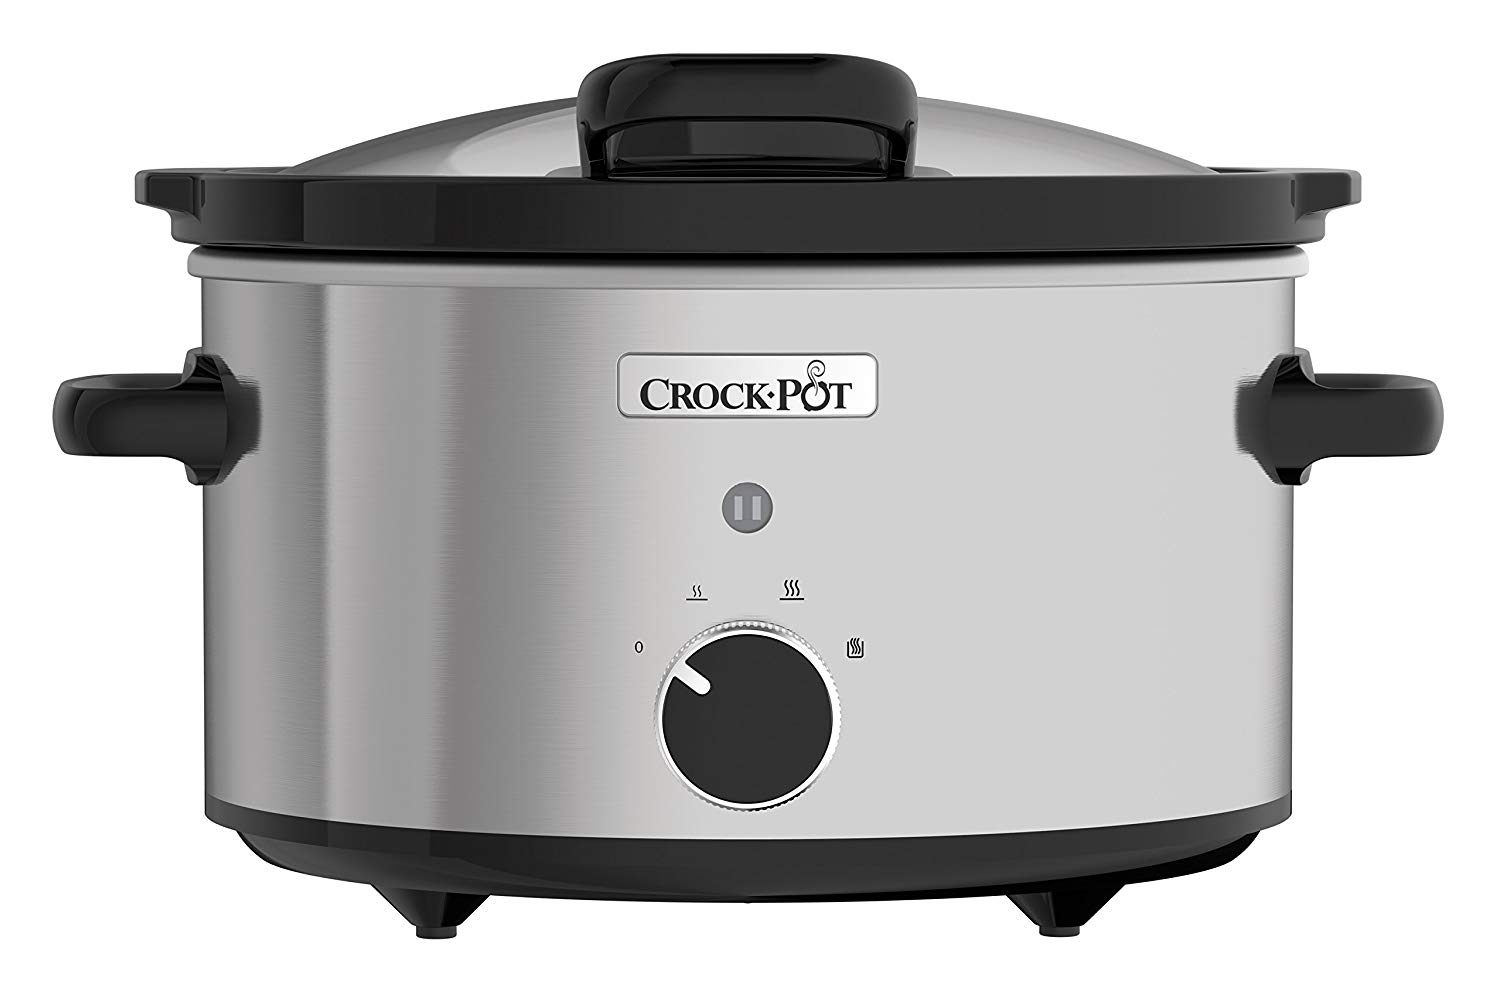 Crock-Pot CSC044 3.5L Stainless Steel Slow Cooker with Hinged Lid for £23.29